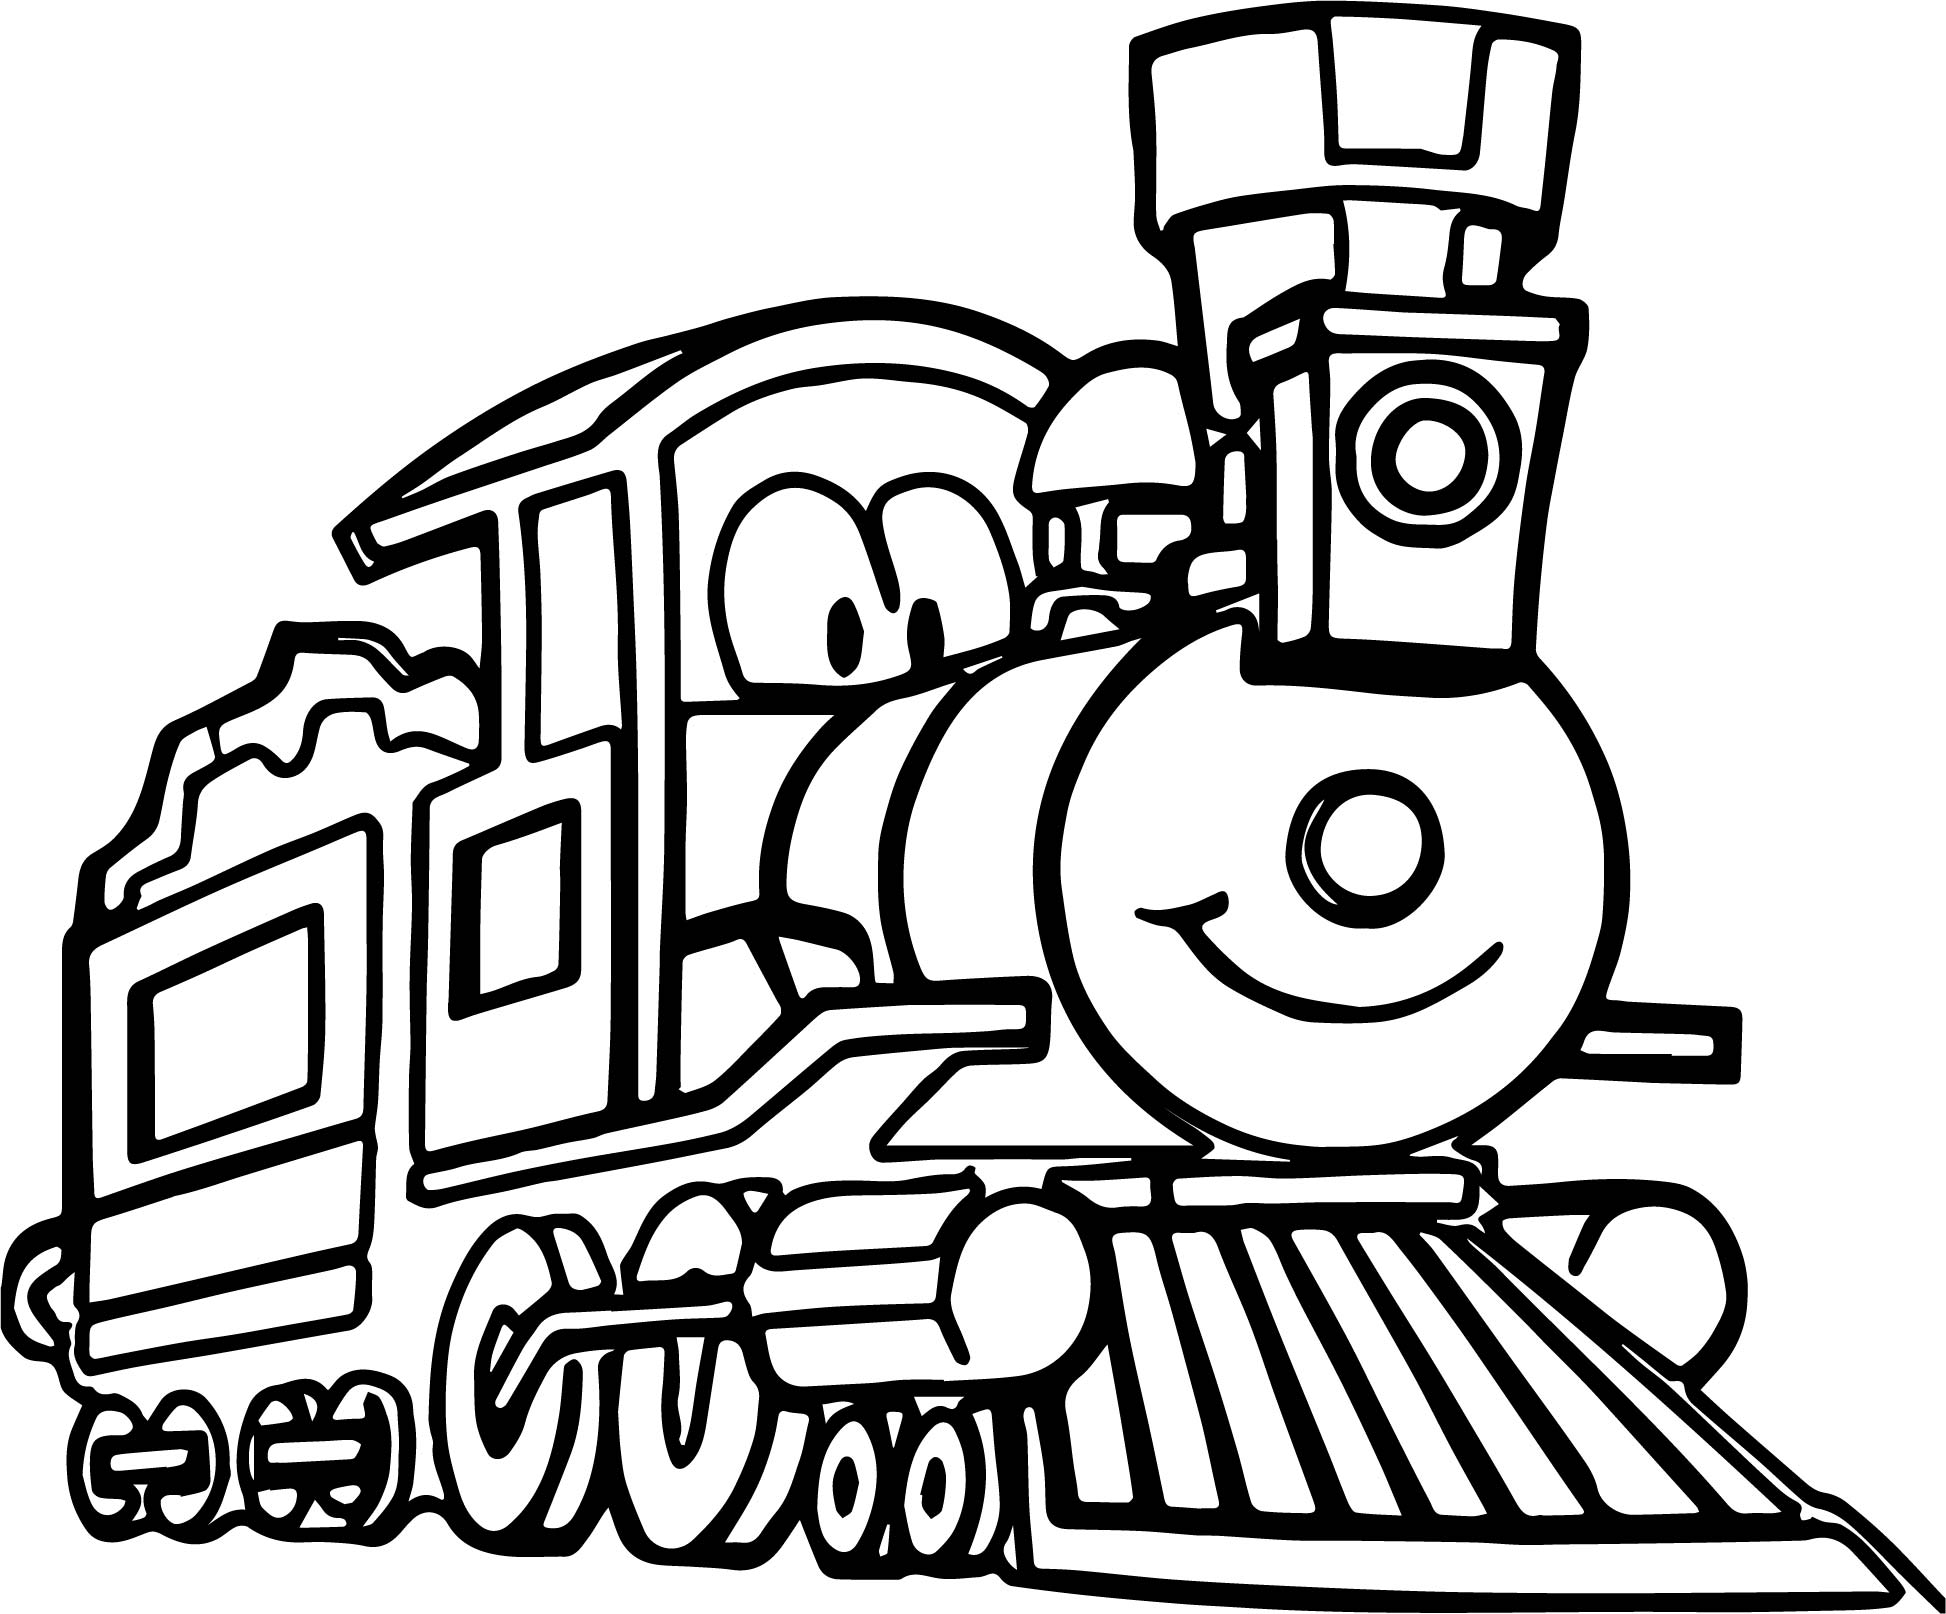 train coloring images free printable train coloring pages for kids cool2bkids coloring images train